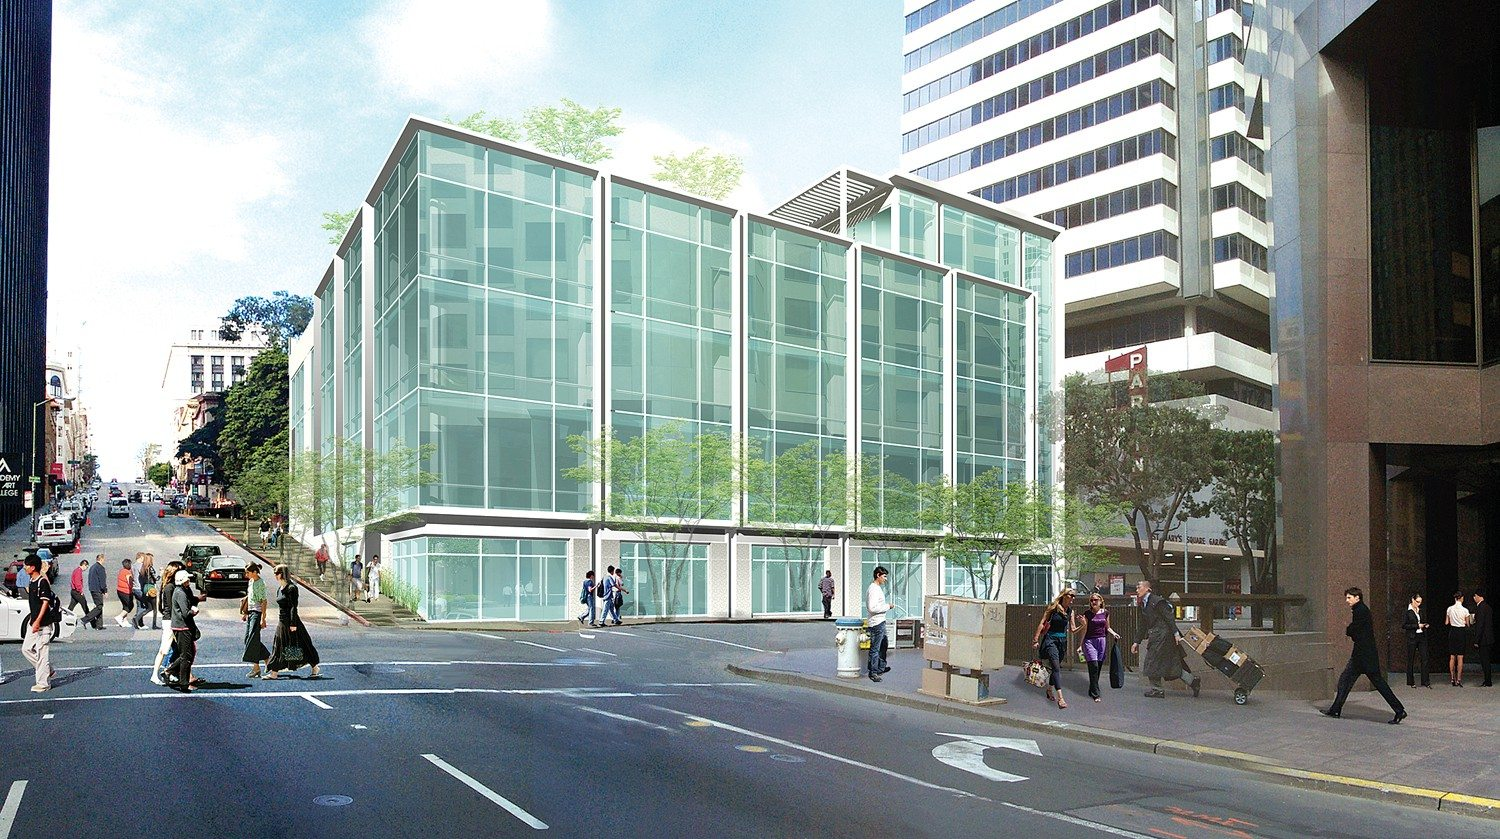 courtesy HELLER MANUS ARCHITECTSA glass building is slated for 500 Pine St. It will include a rooftop park design. The project was picked up by a new developer following the recession.